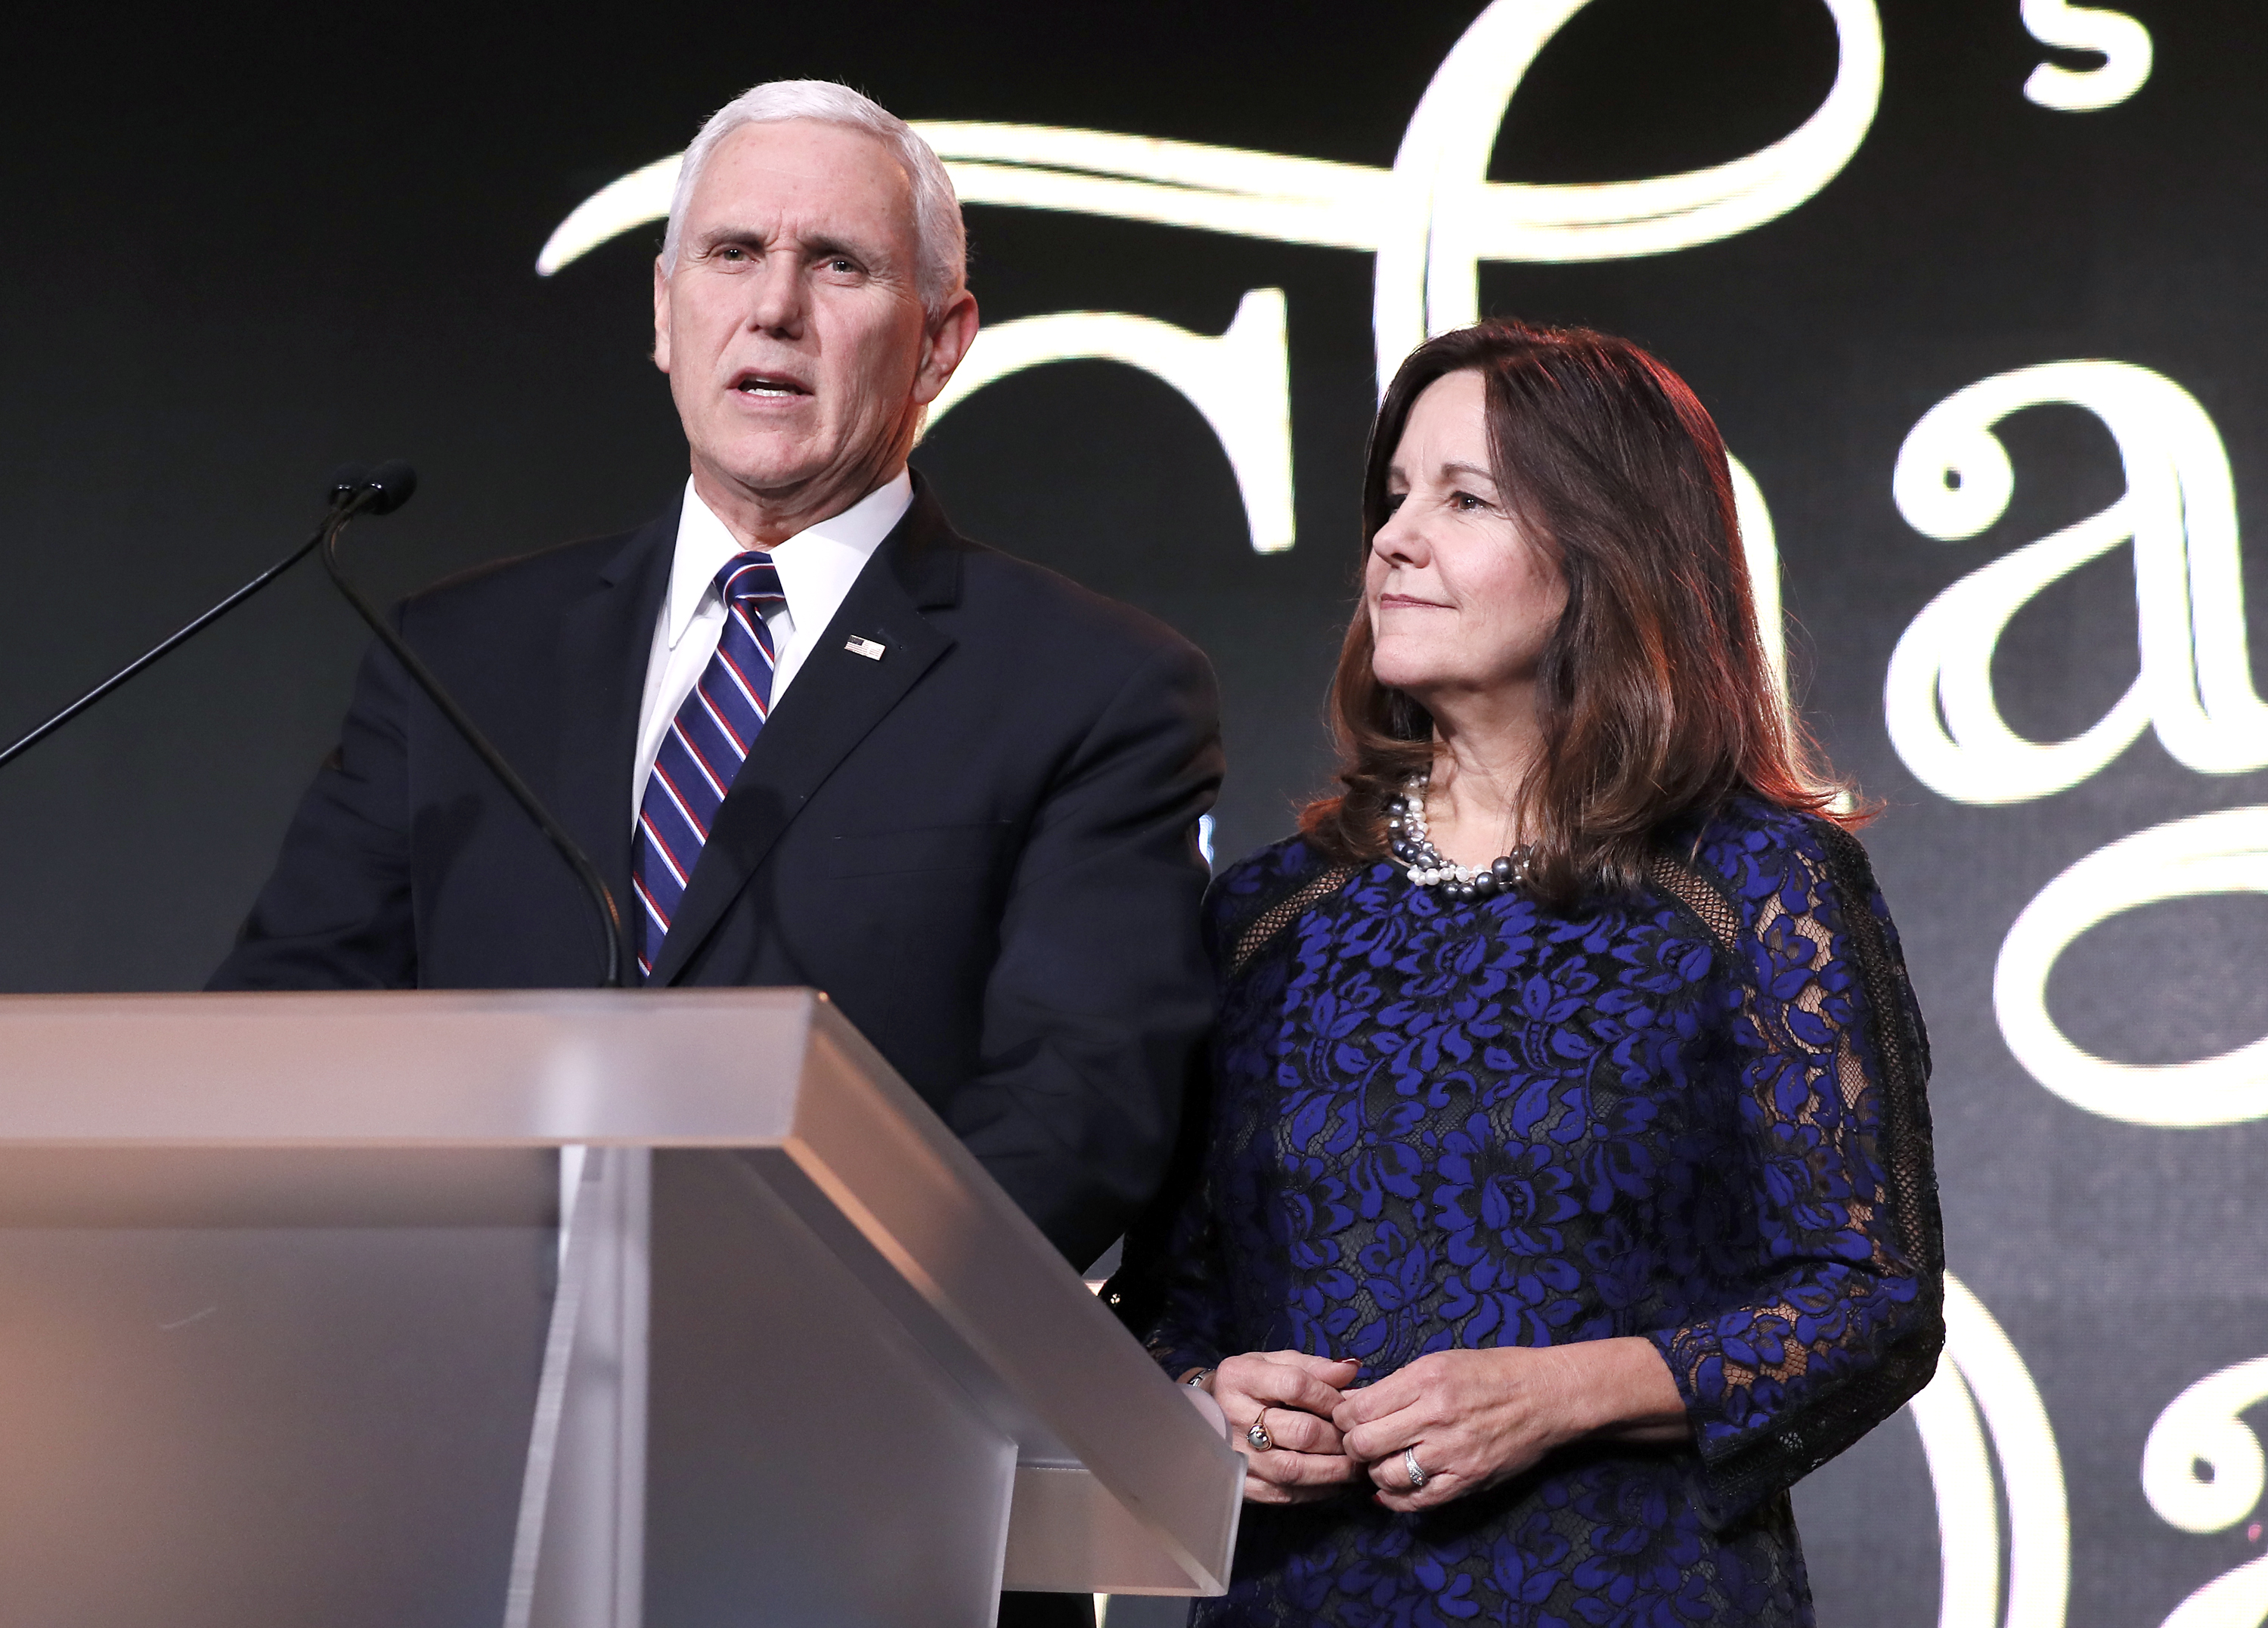 washingtonpost.com - Lindsey Bever - Pence says criticism of wife's job at anti-LGBT Christian school is 'deeply offensive to us'